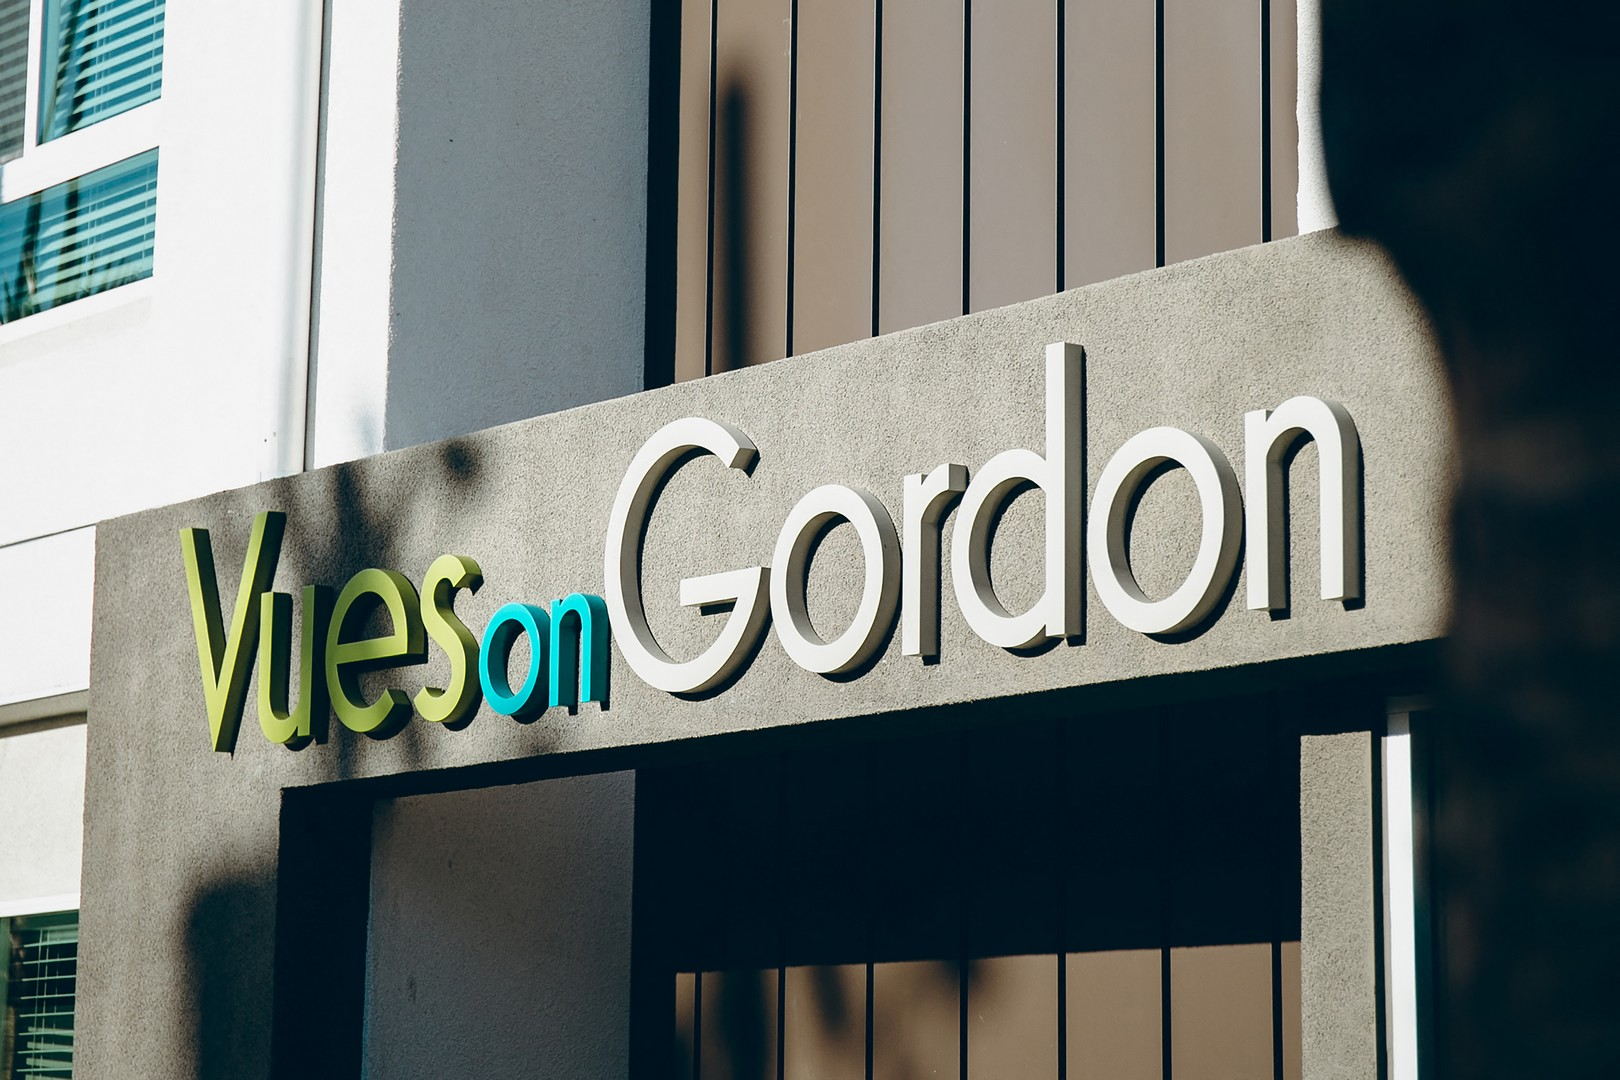 Vues on Gordon Luxury Apartments in Hollywood, CA -Exterior